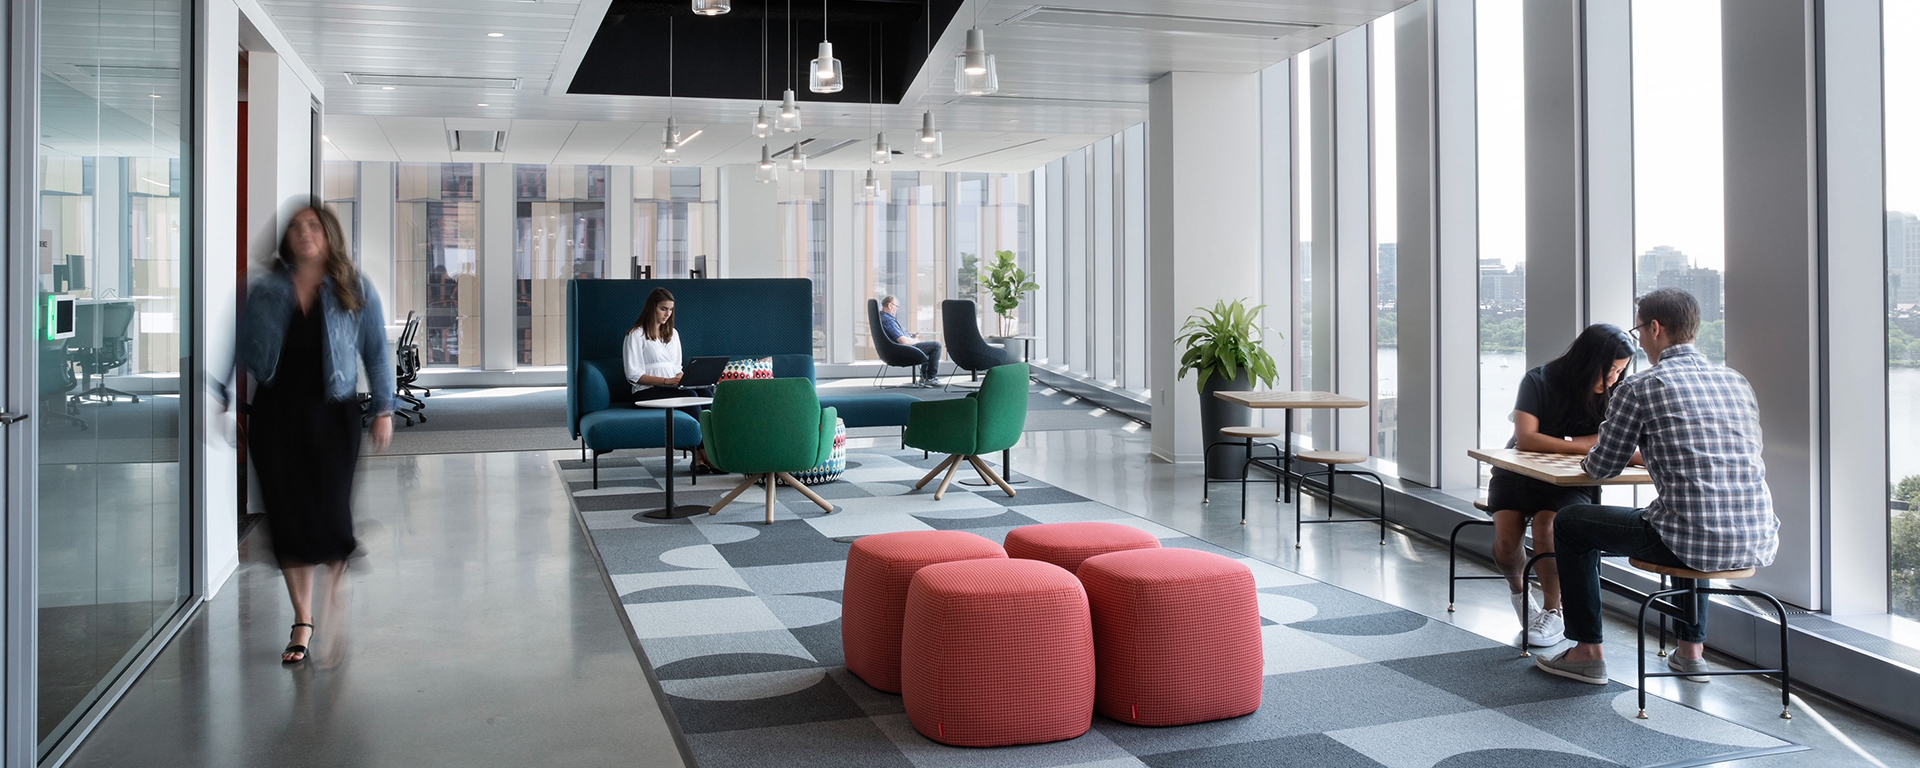 The inside of Capital One's new Boston office location